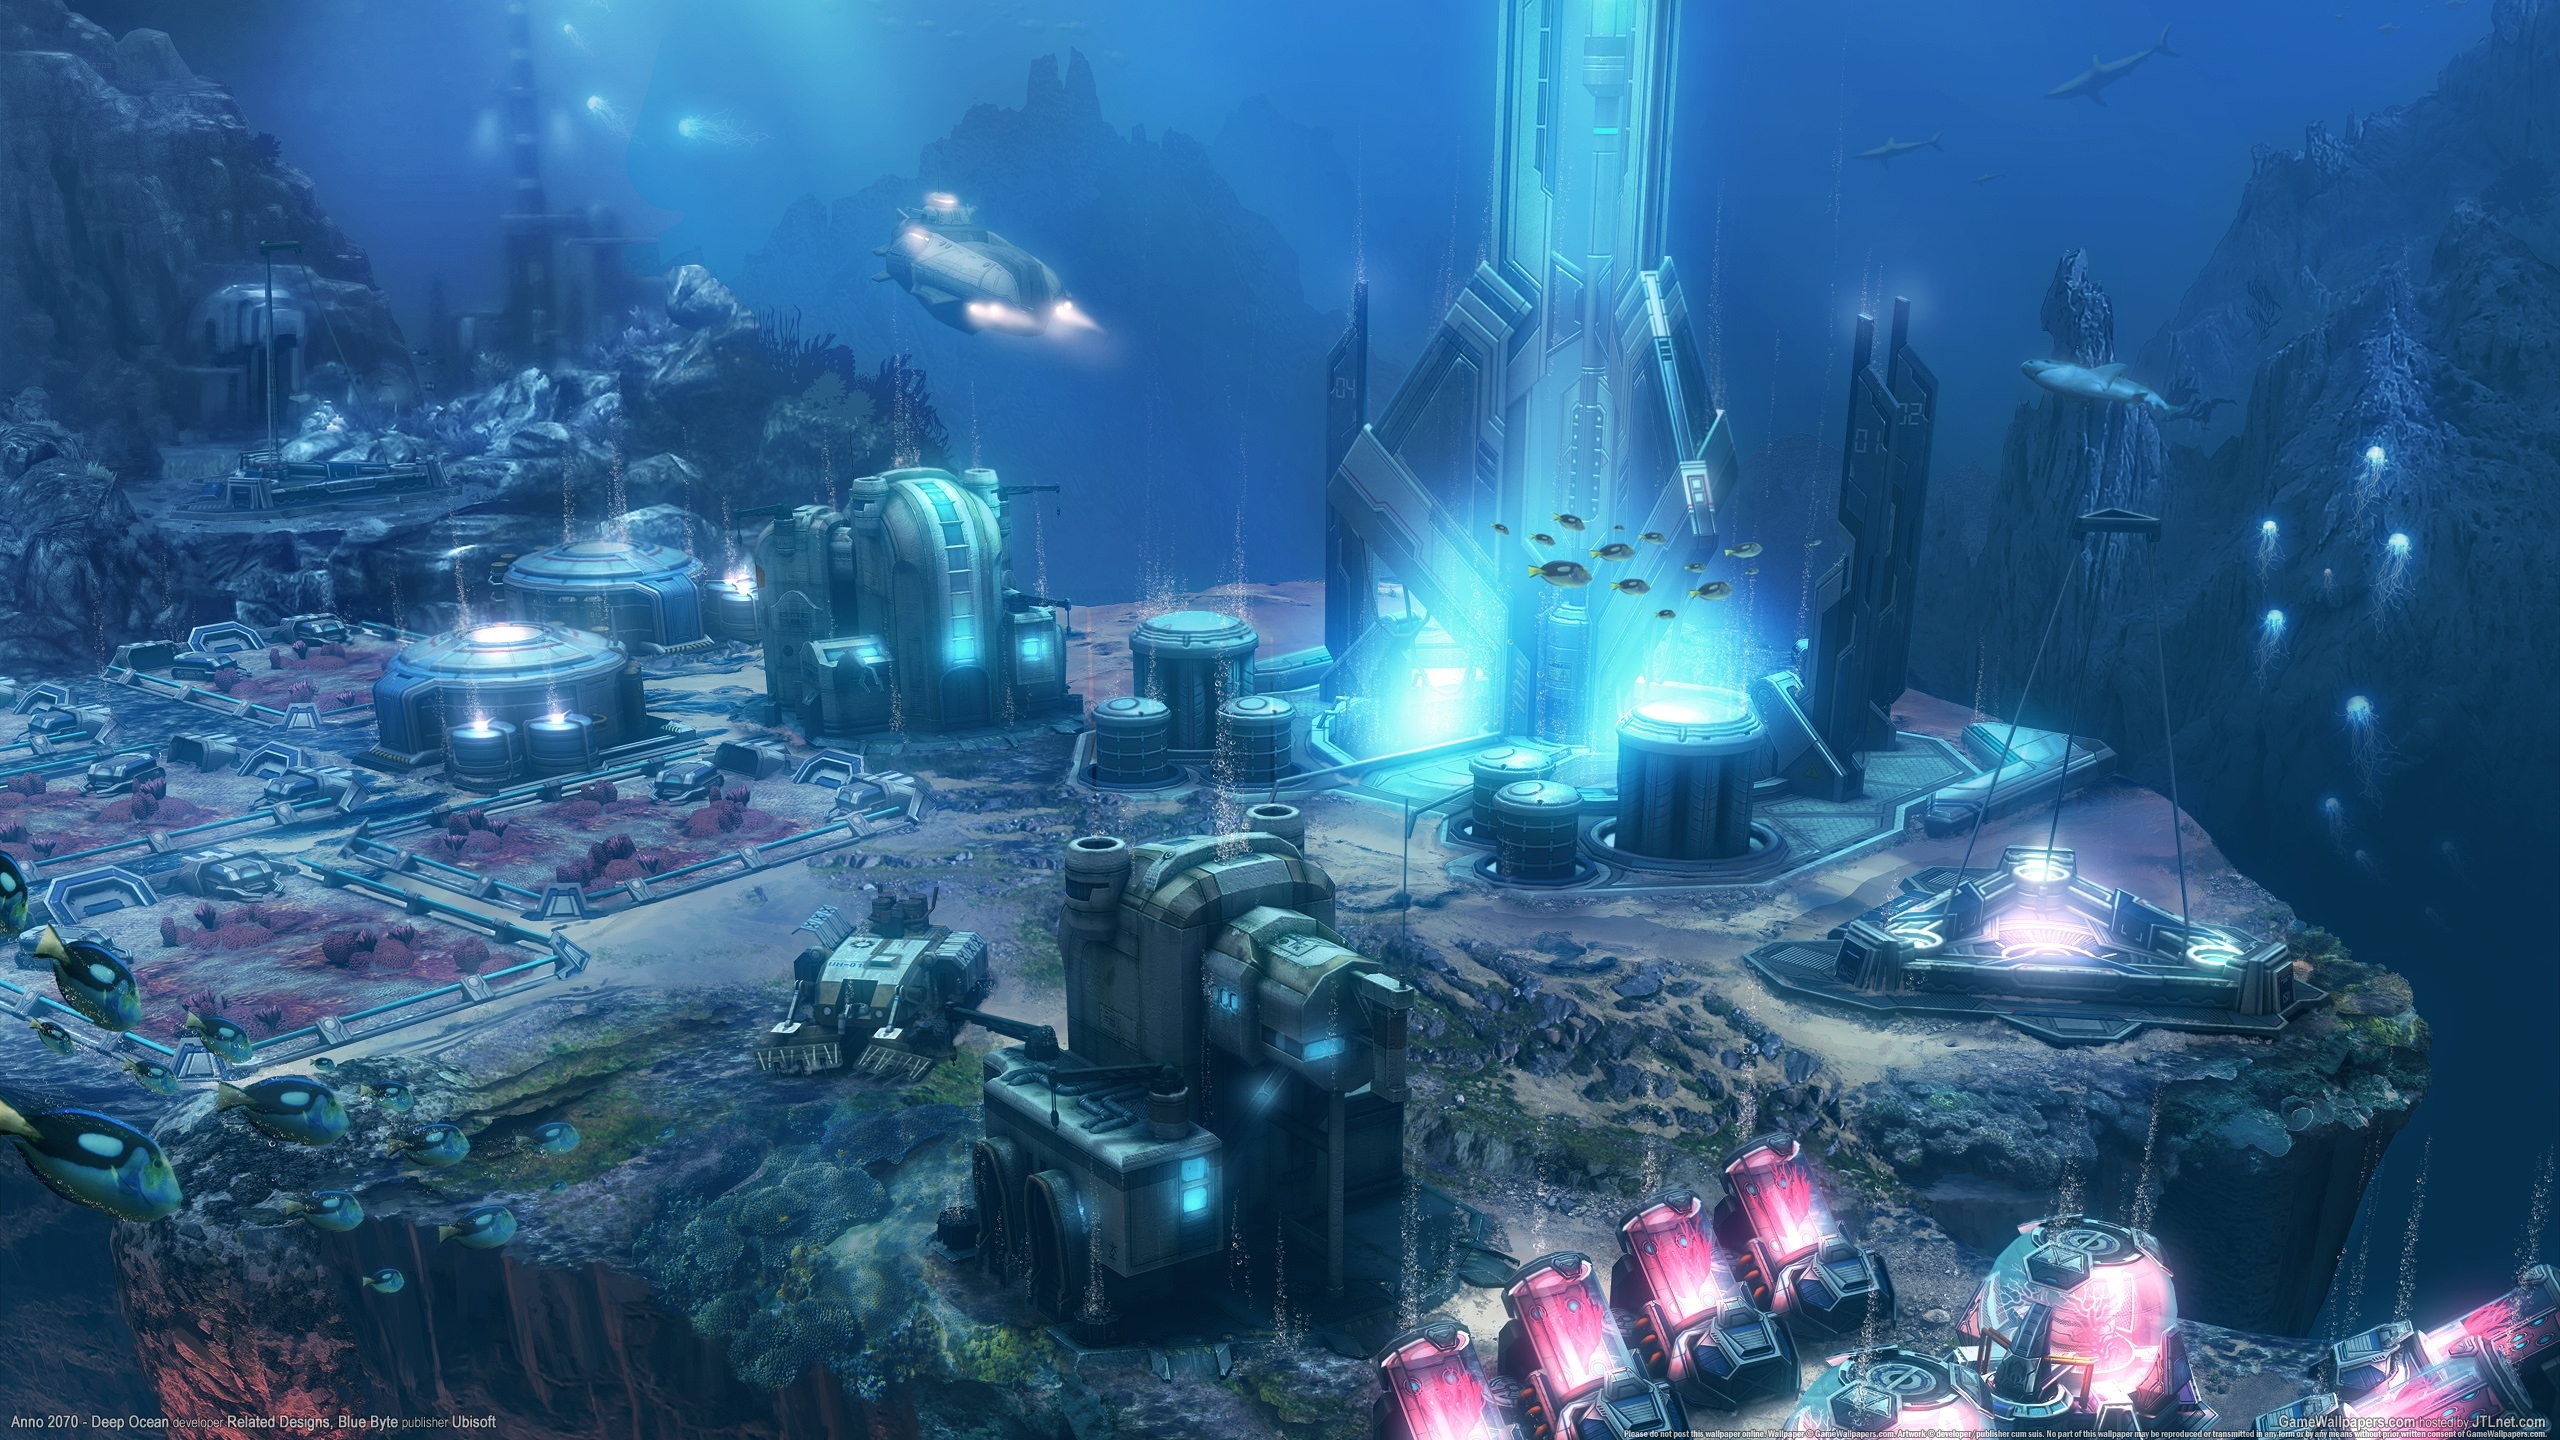 Anno 2070 Deep Ocean Sci Fi Underwater City Wallpaper